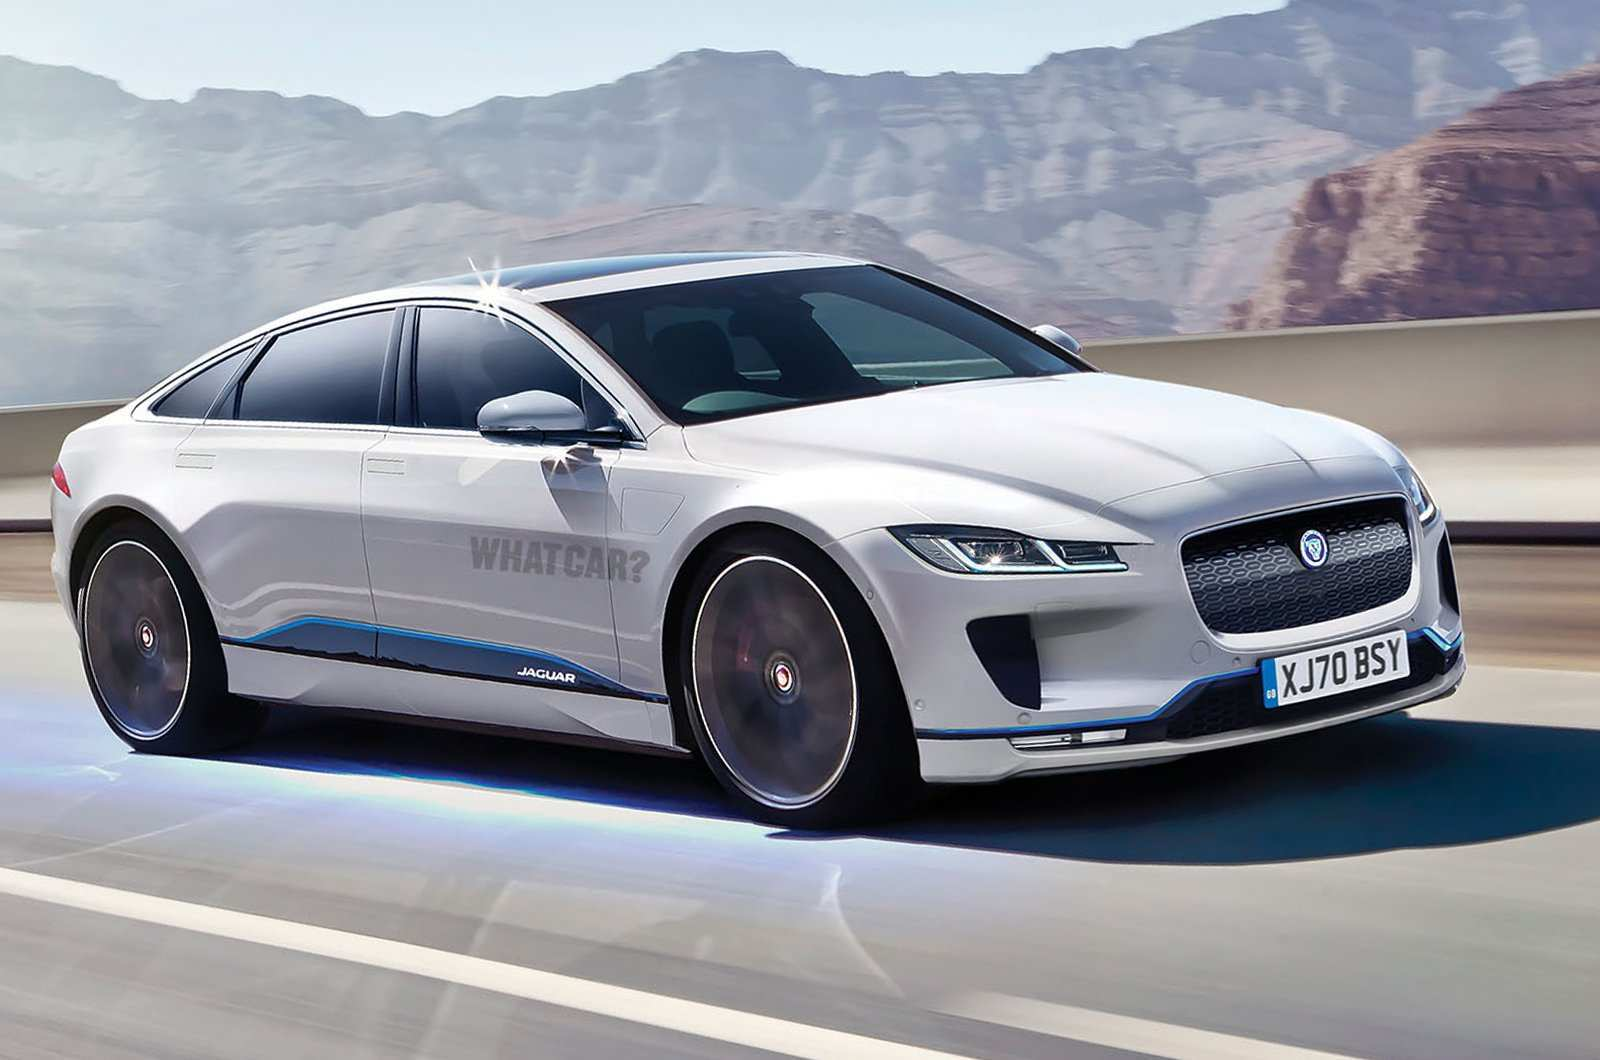 51 All New Xj Jaguar 2019 Price And Review